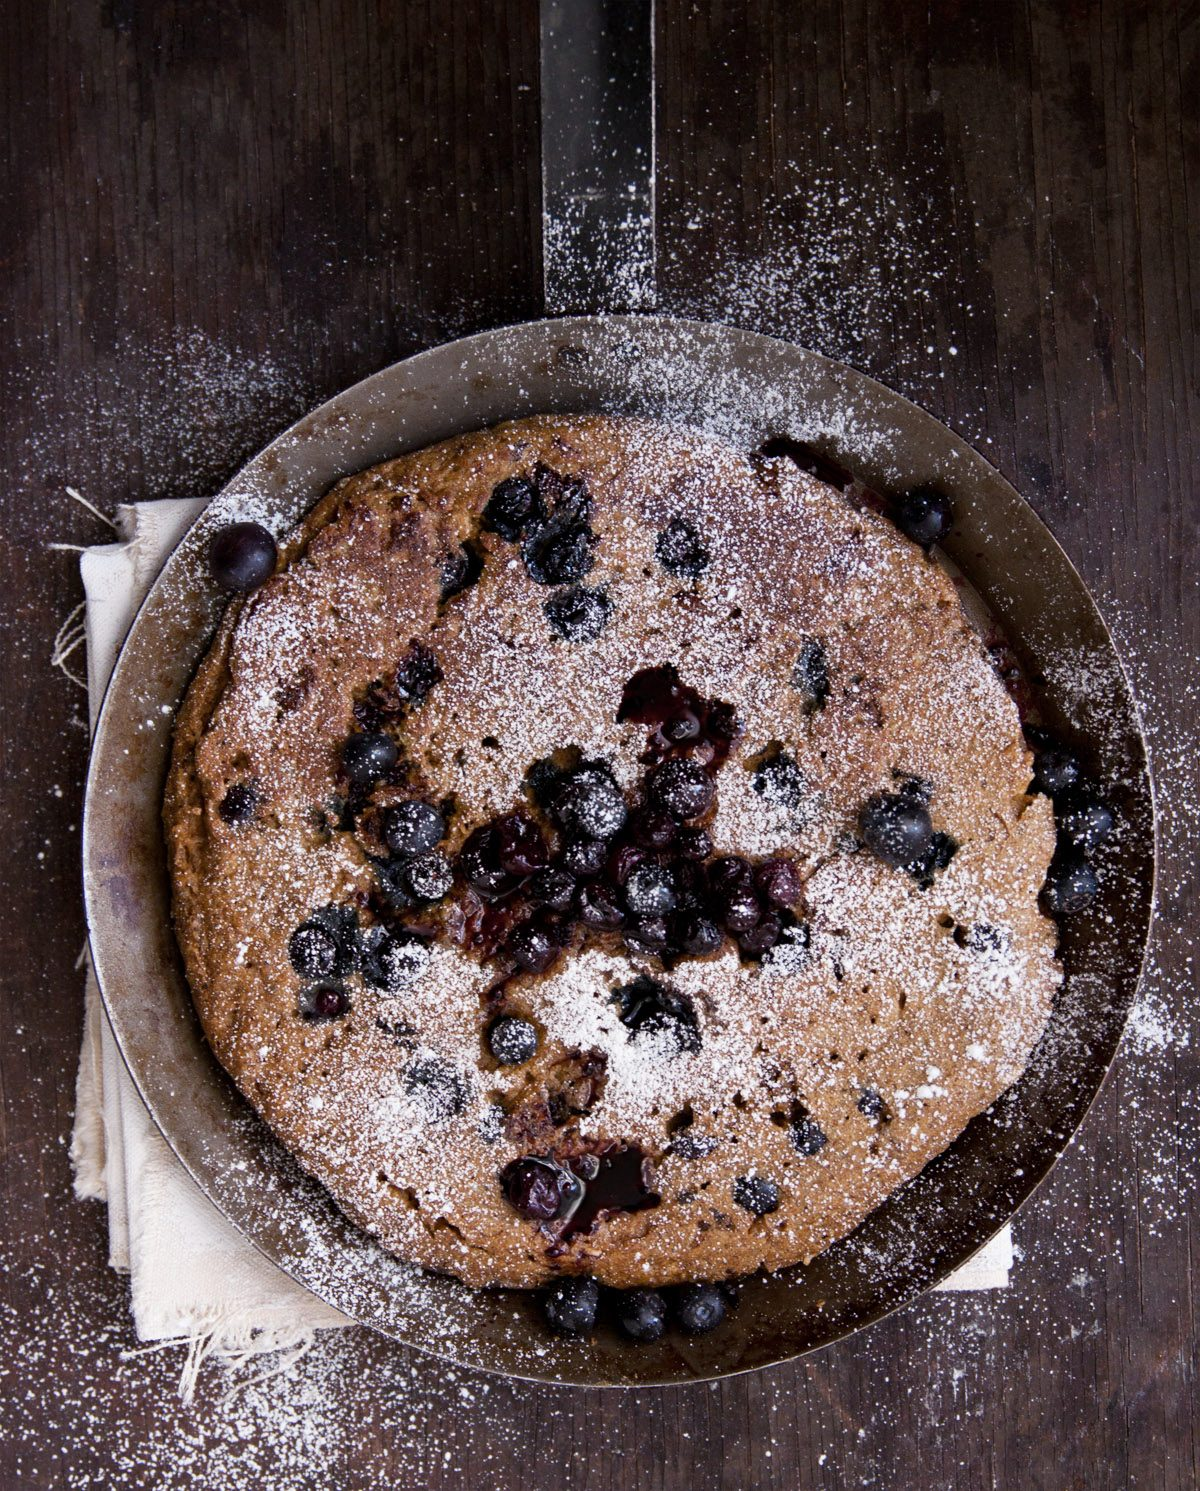 Blueberry and Oat Polenta Pancakes